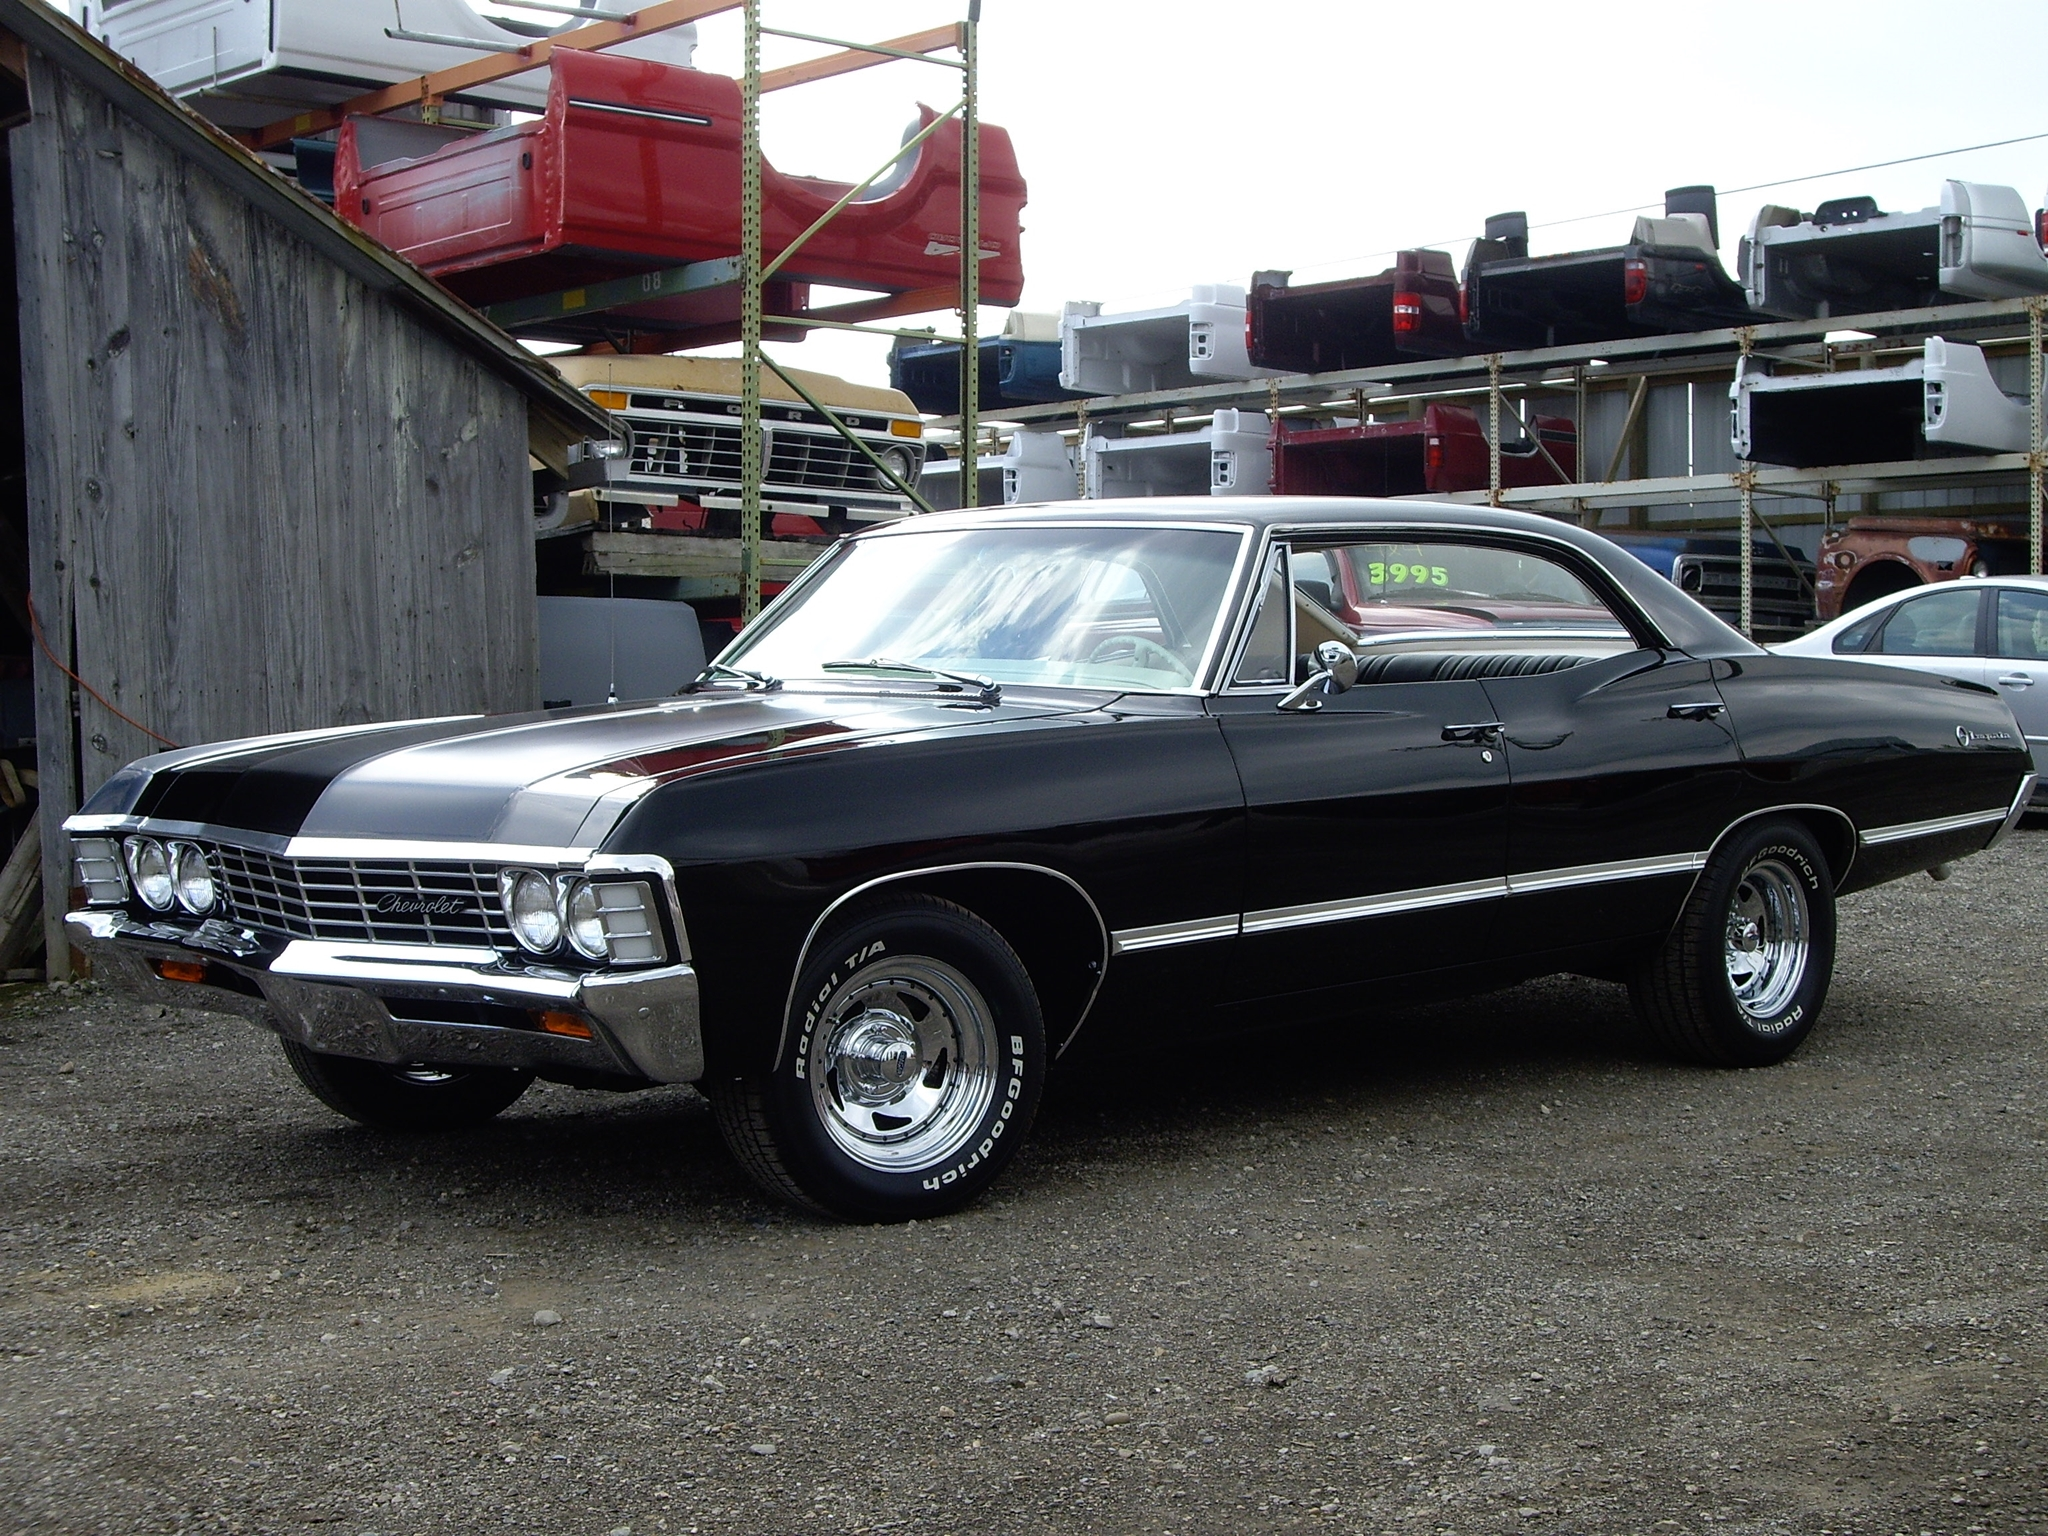 1967 - Chevrolet Impala 4 Door Hardtop by 4WheelsSociety on DeviantArt